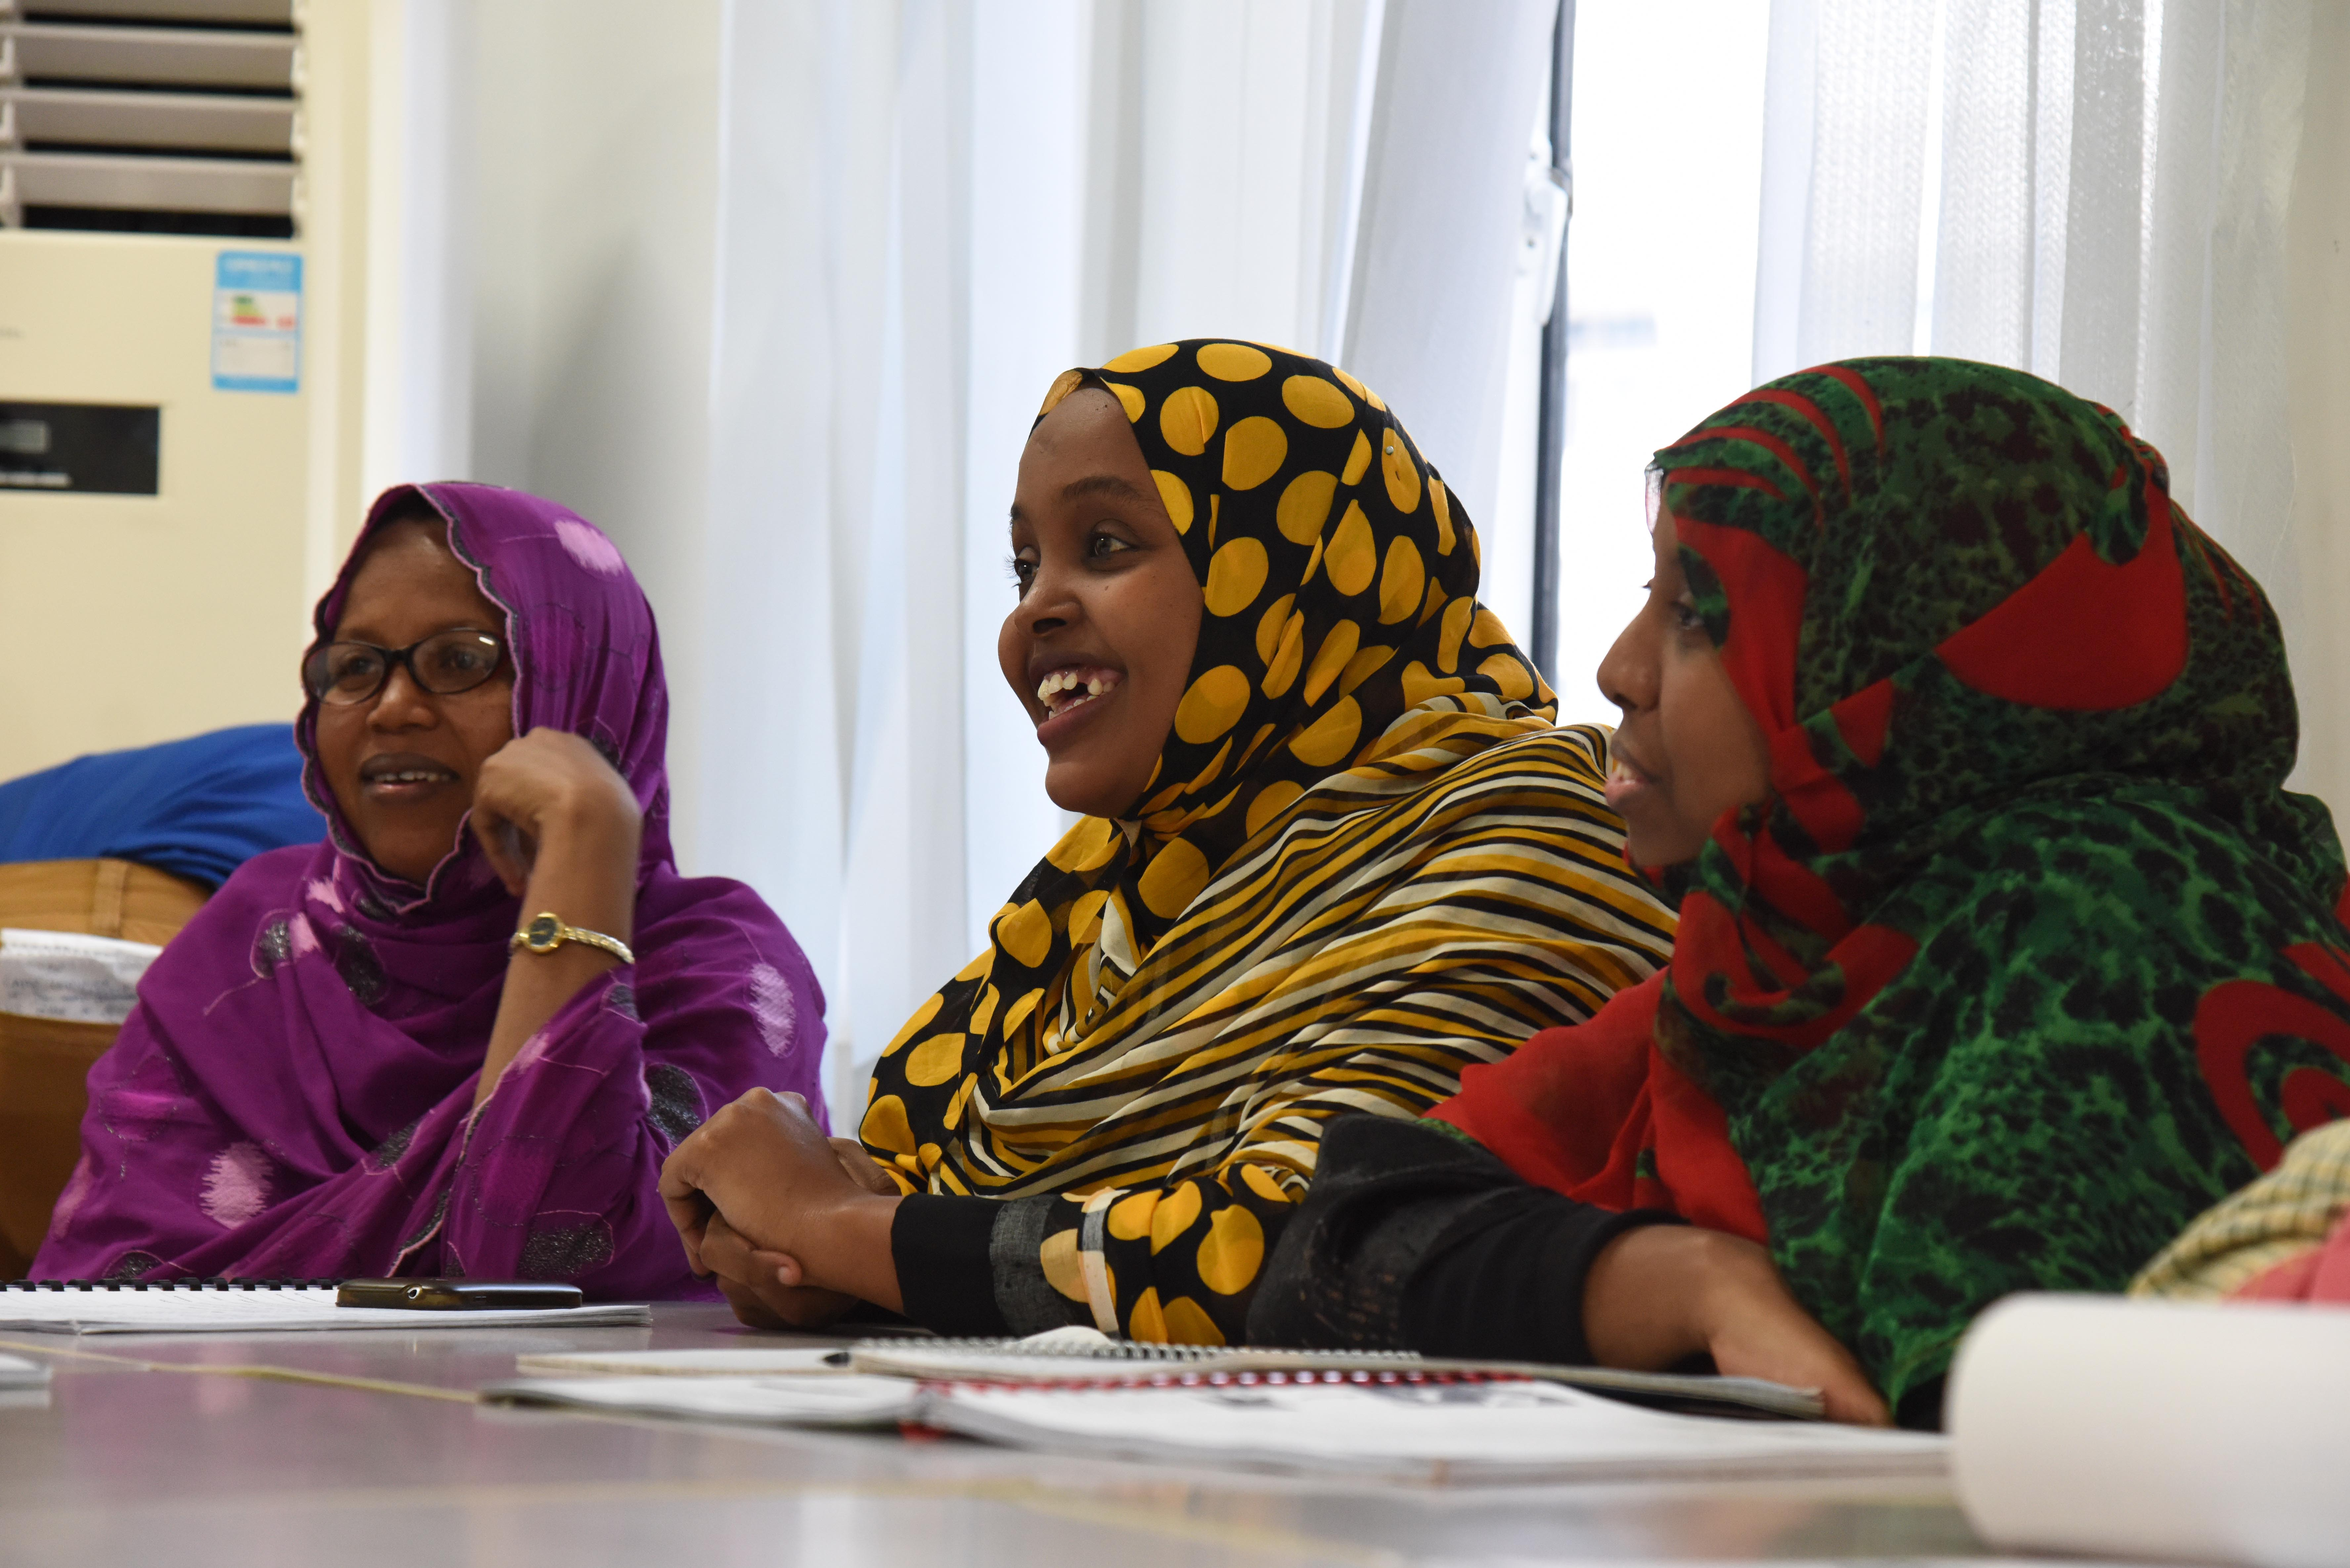 Djiboutian students laugh with U.S. military members during an English discussion group at the Diplomatic Institute in Djibouti, Jan. 12, 2016. More than 15 members from the local community participated in the group discussions, improving their English speaking and comprehension skills by interacting with native speakers. (U.S. Air Force photo by Staff Sgt. Victoria Sneed)